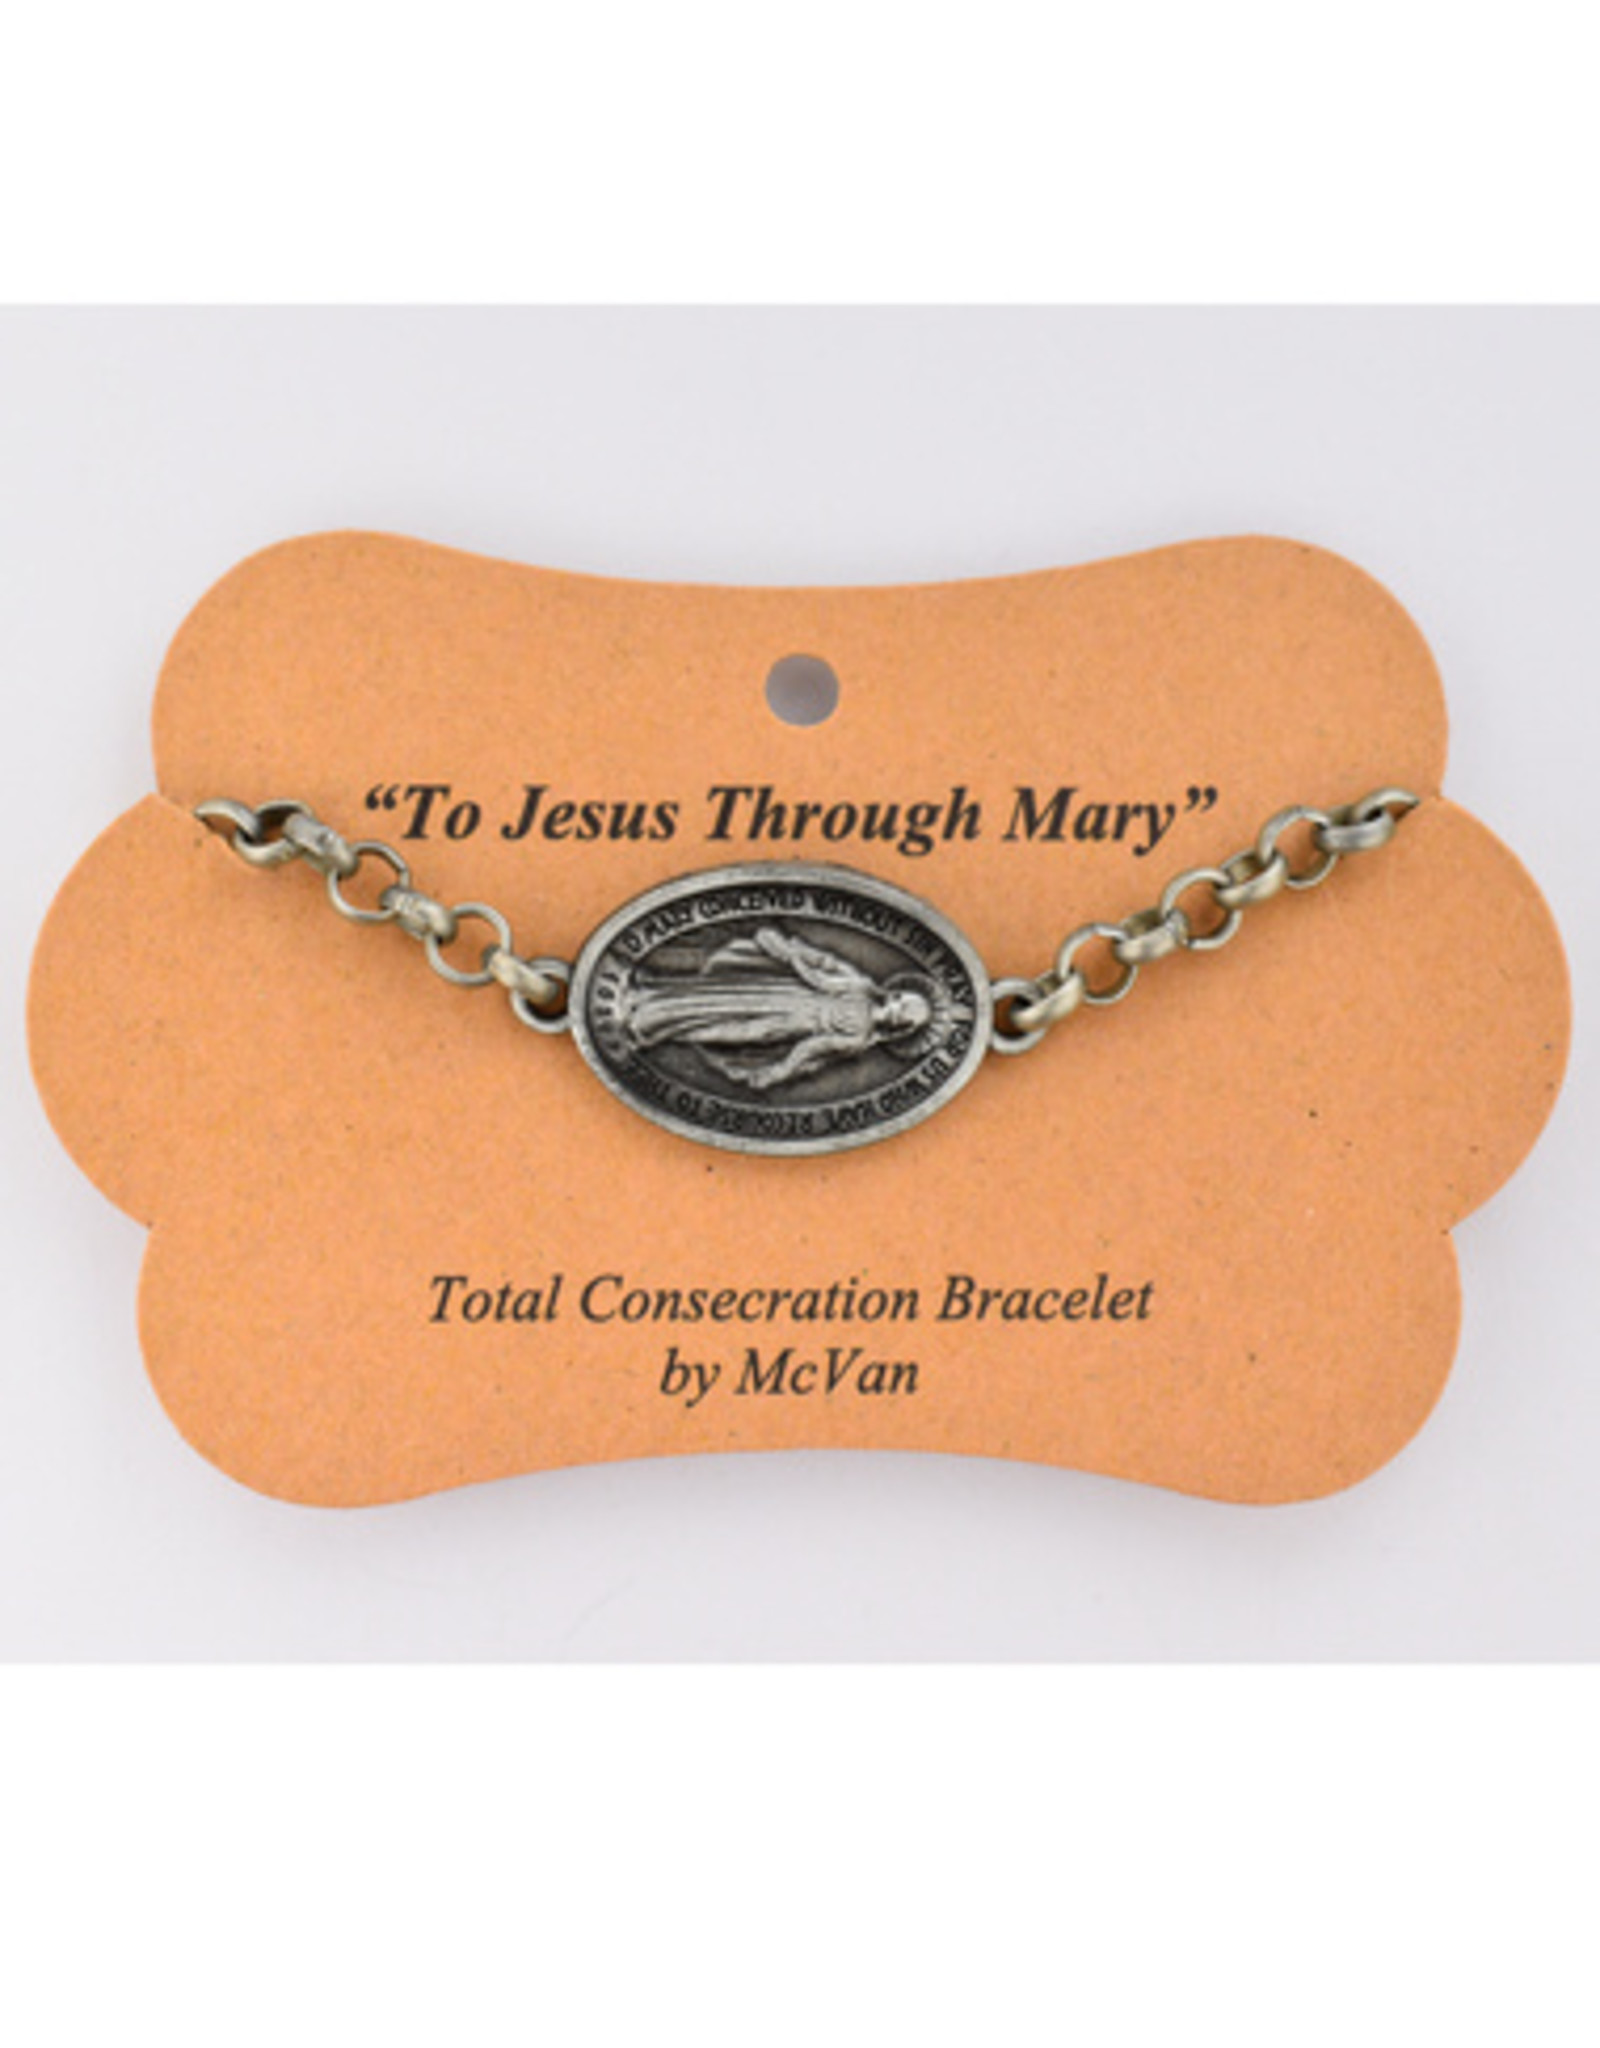 BRAC TOTAL CONSECRATION TO JESUS